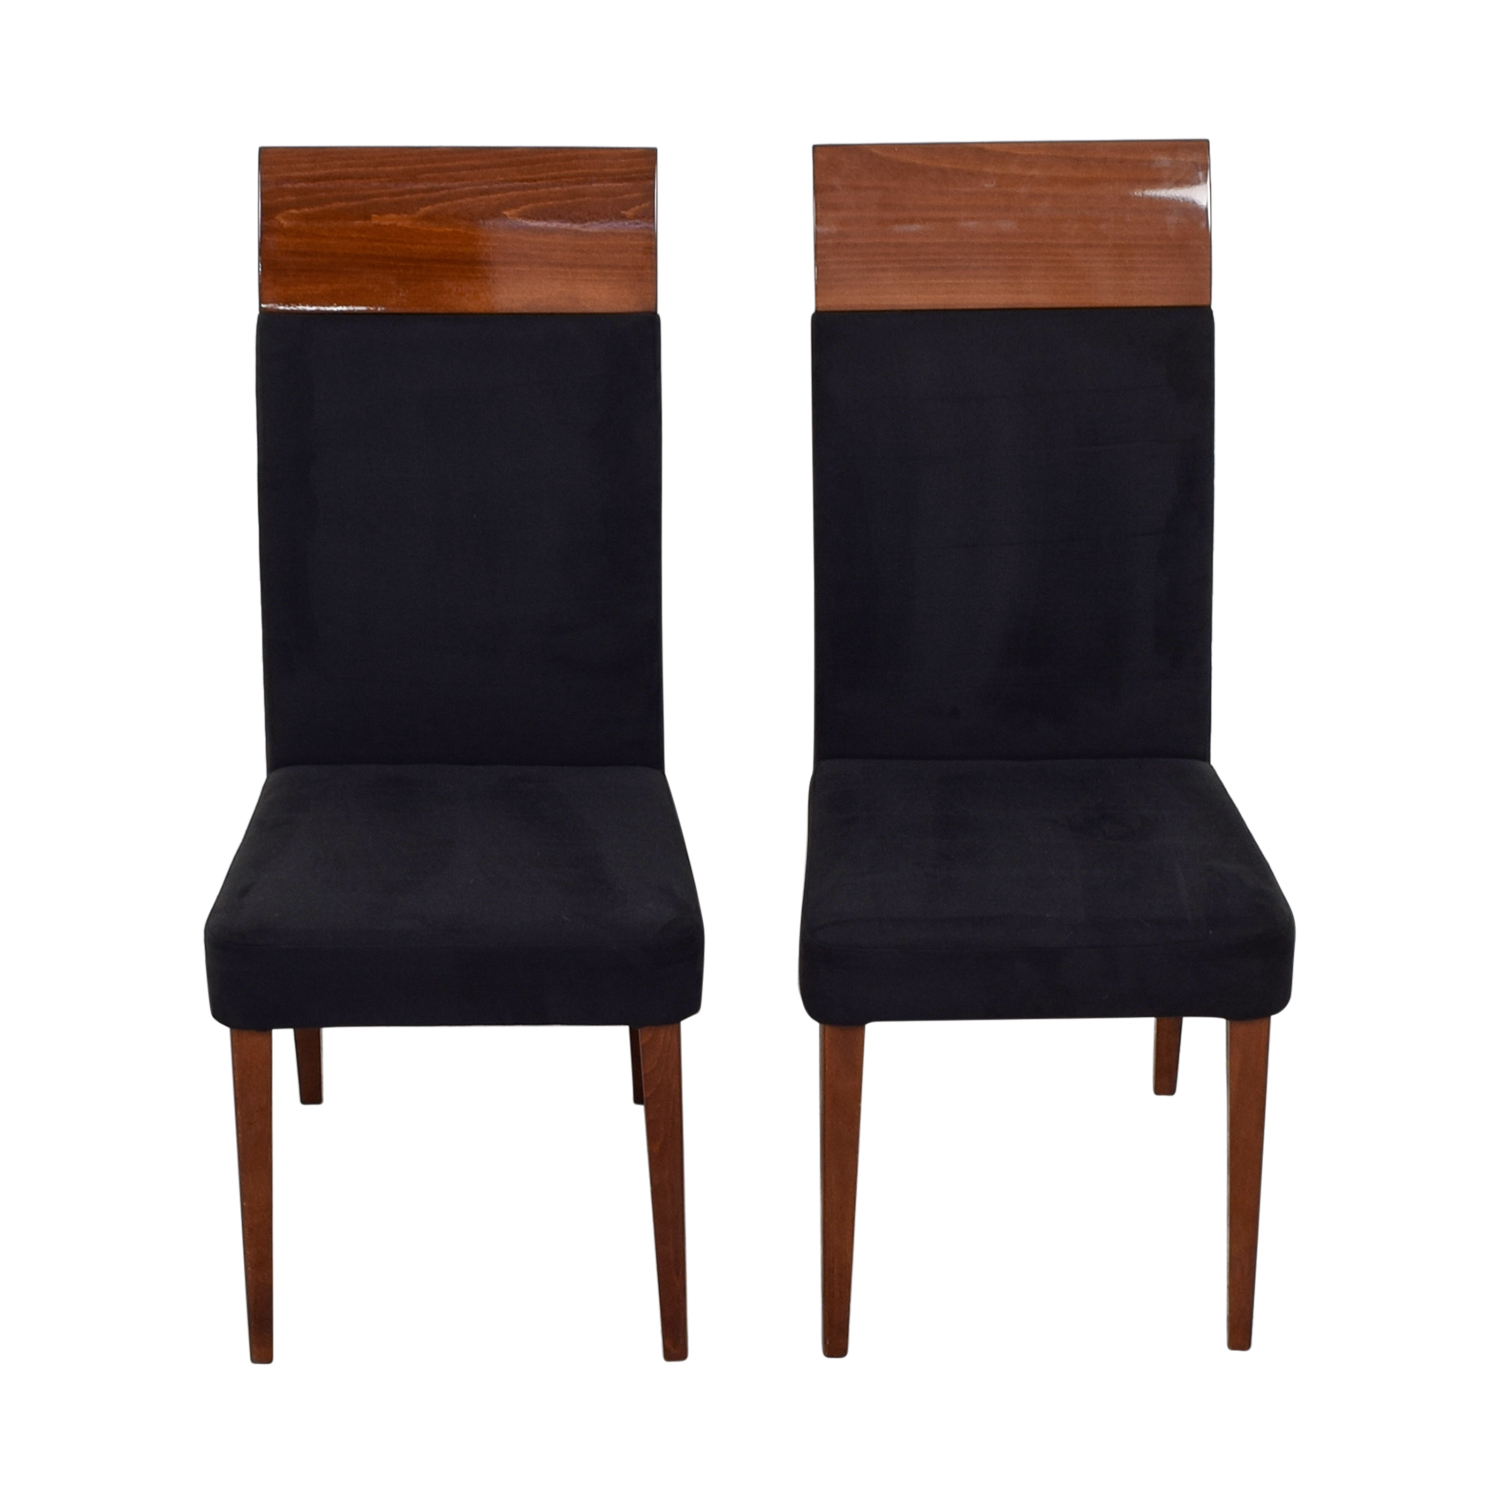 Black upholstered wood dining chairs chairs